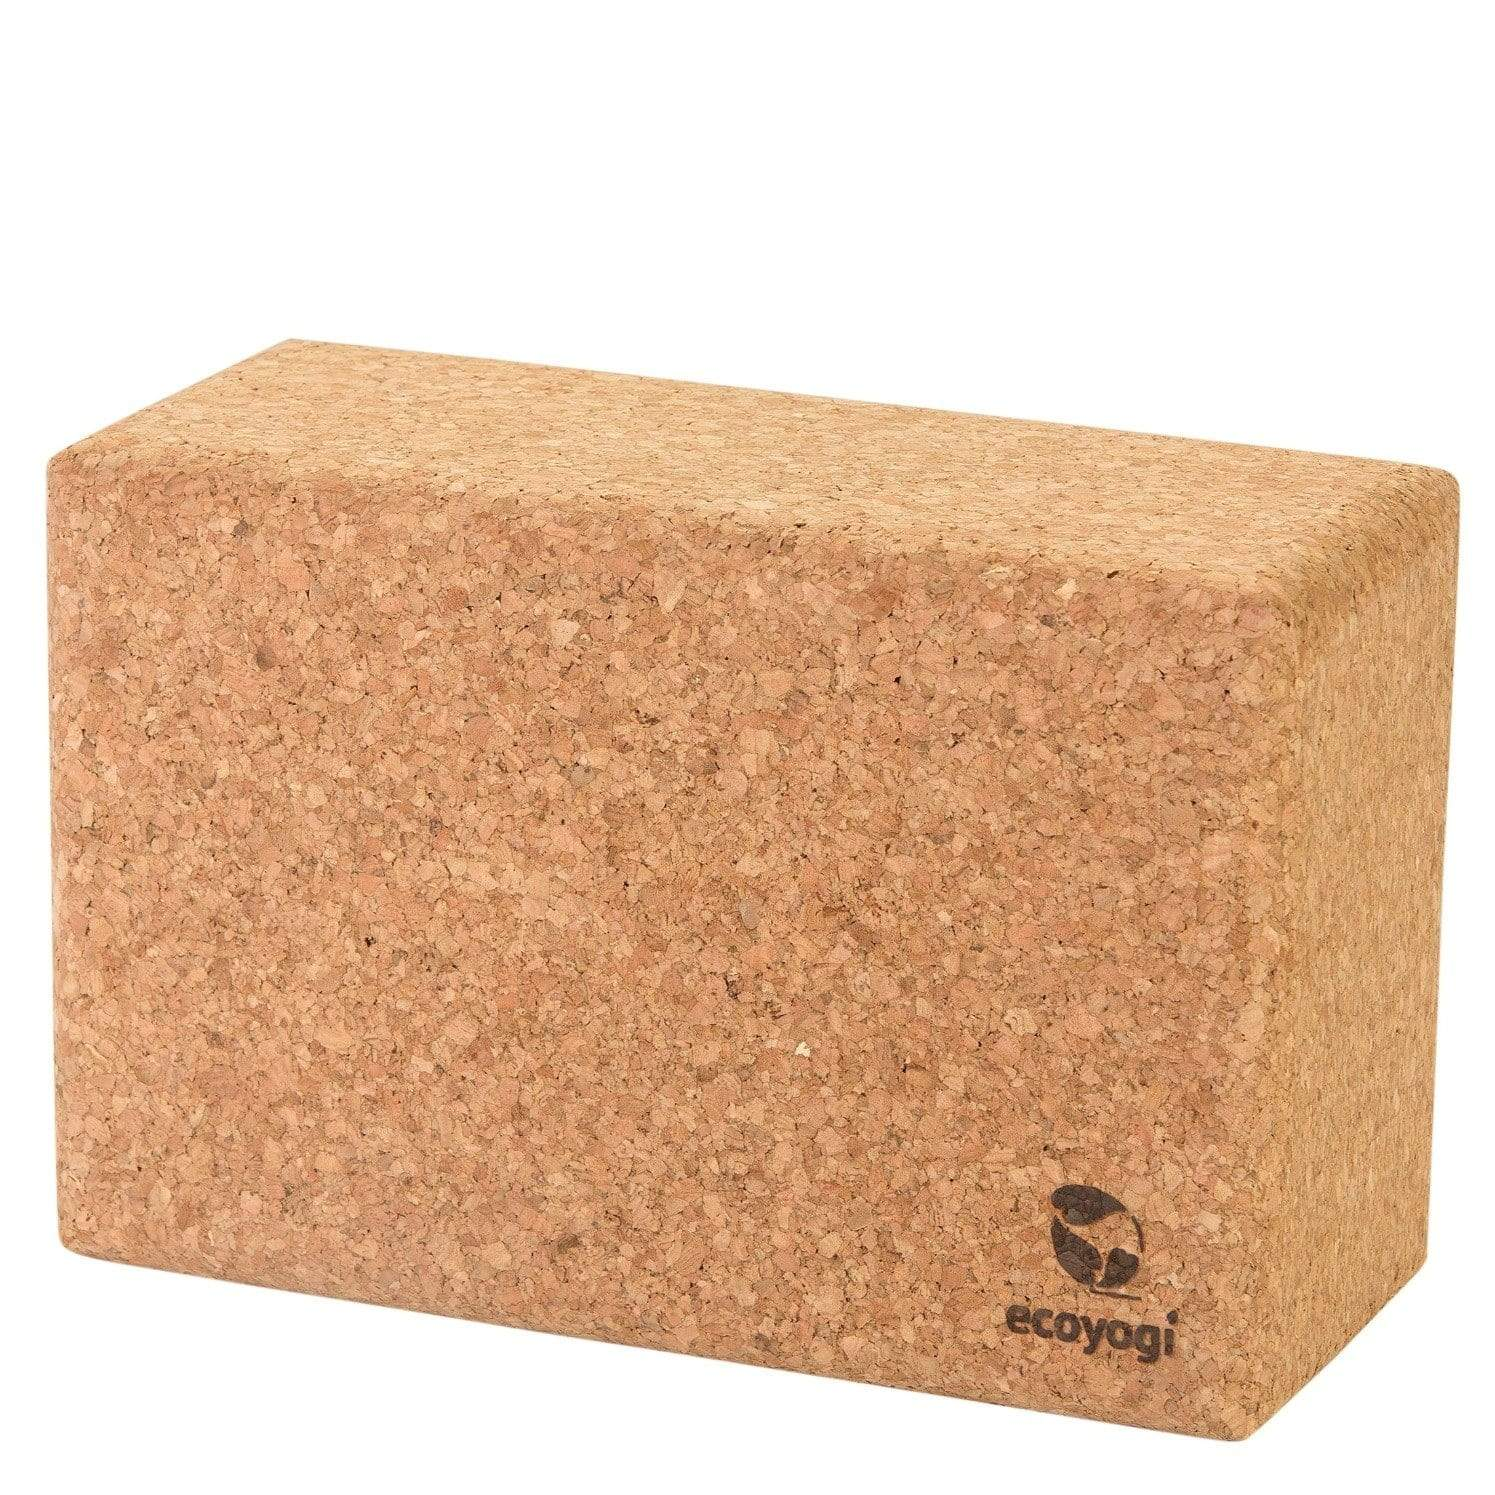 sustainable gifts Ecoyogi Sustainable cork yoga block large